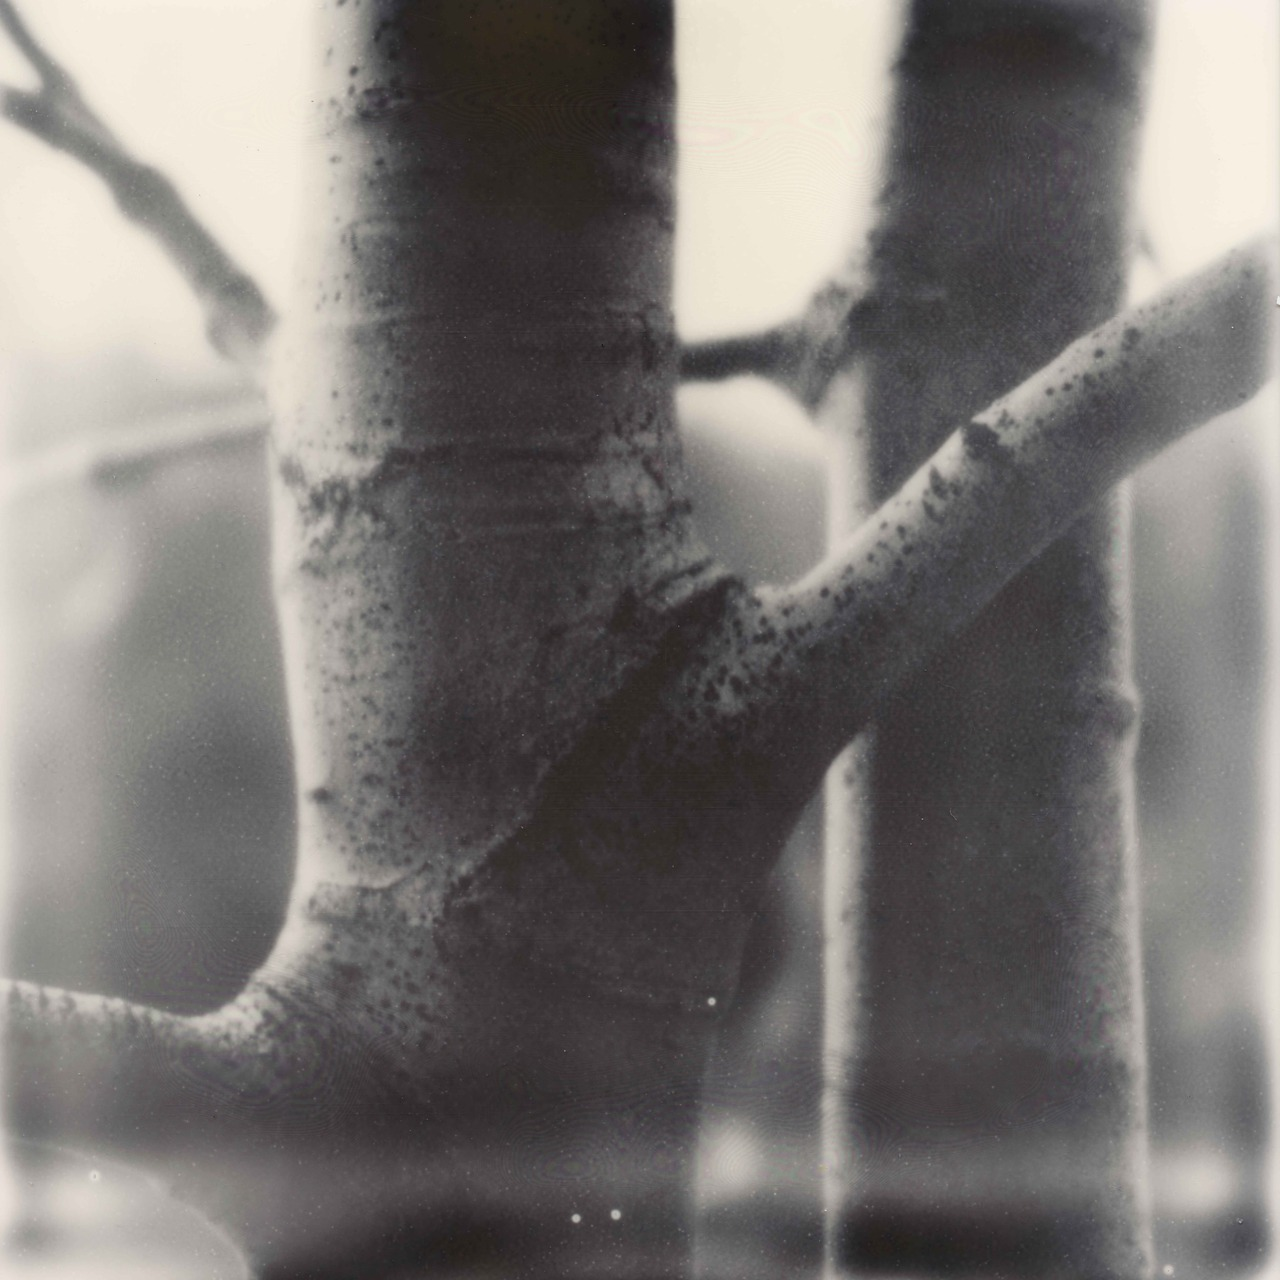 Ian Ruhter/ Impossible Film  /Polaroid /Aspen Tree /Lake Tahoe Ca, 11.27.2012